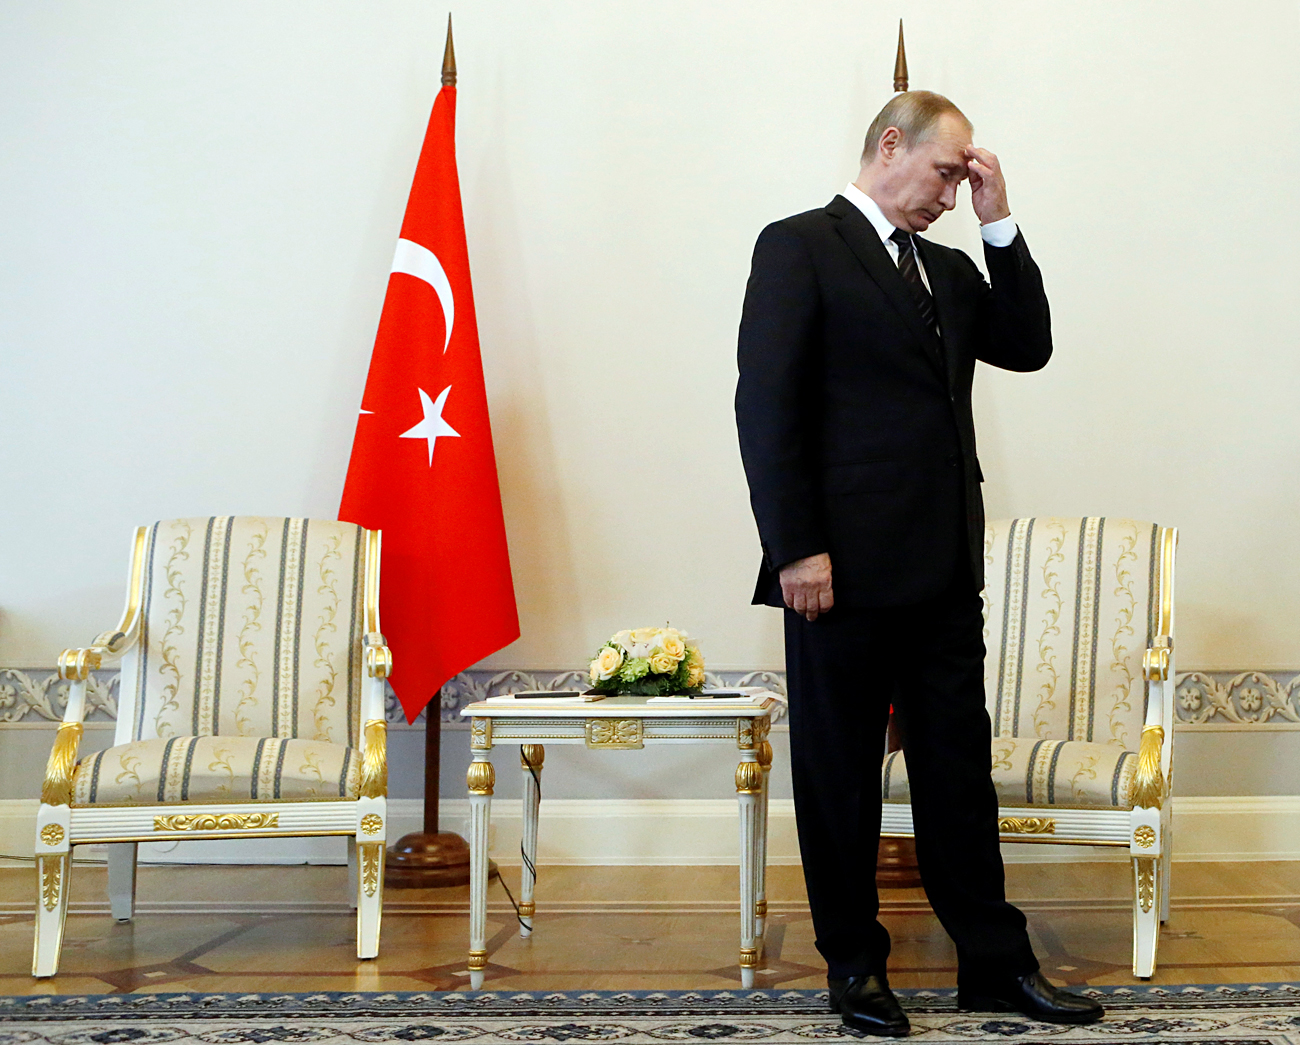 Russian President Vladimir Putin attends a meeting with Turkish President Tayyip Erdogan in St. Petersburg, Russia, August 9, 2016